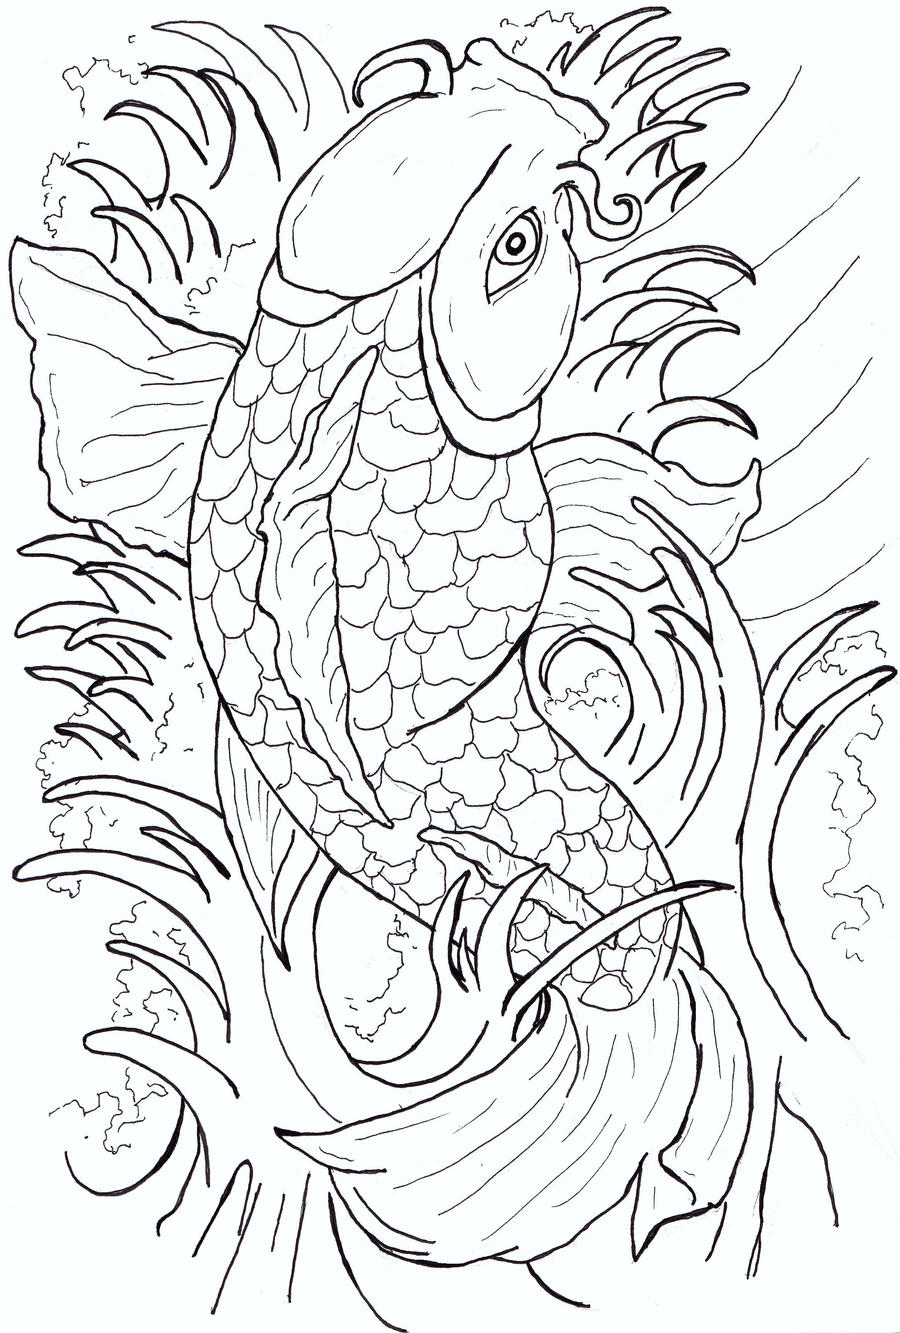 Japanese koi fish tattoo flash by caylyngasm on deviantart for Japanese koi fish drawing